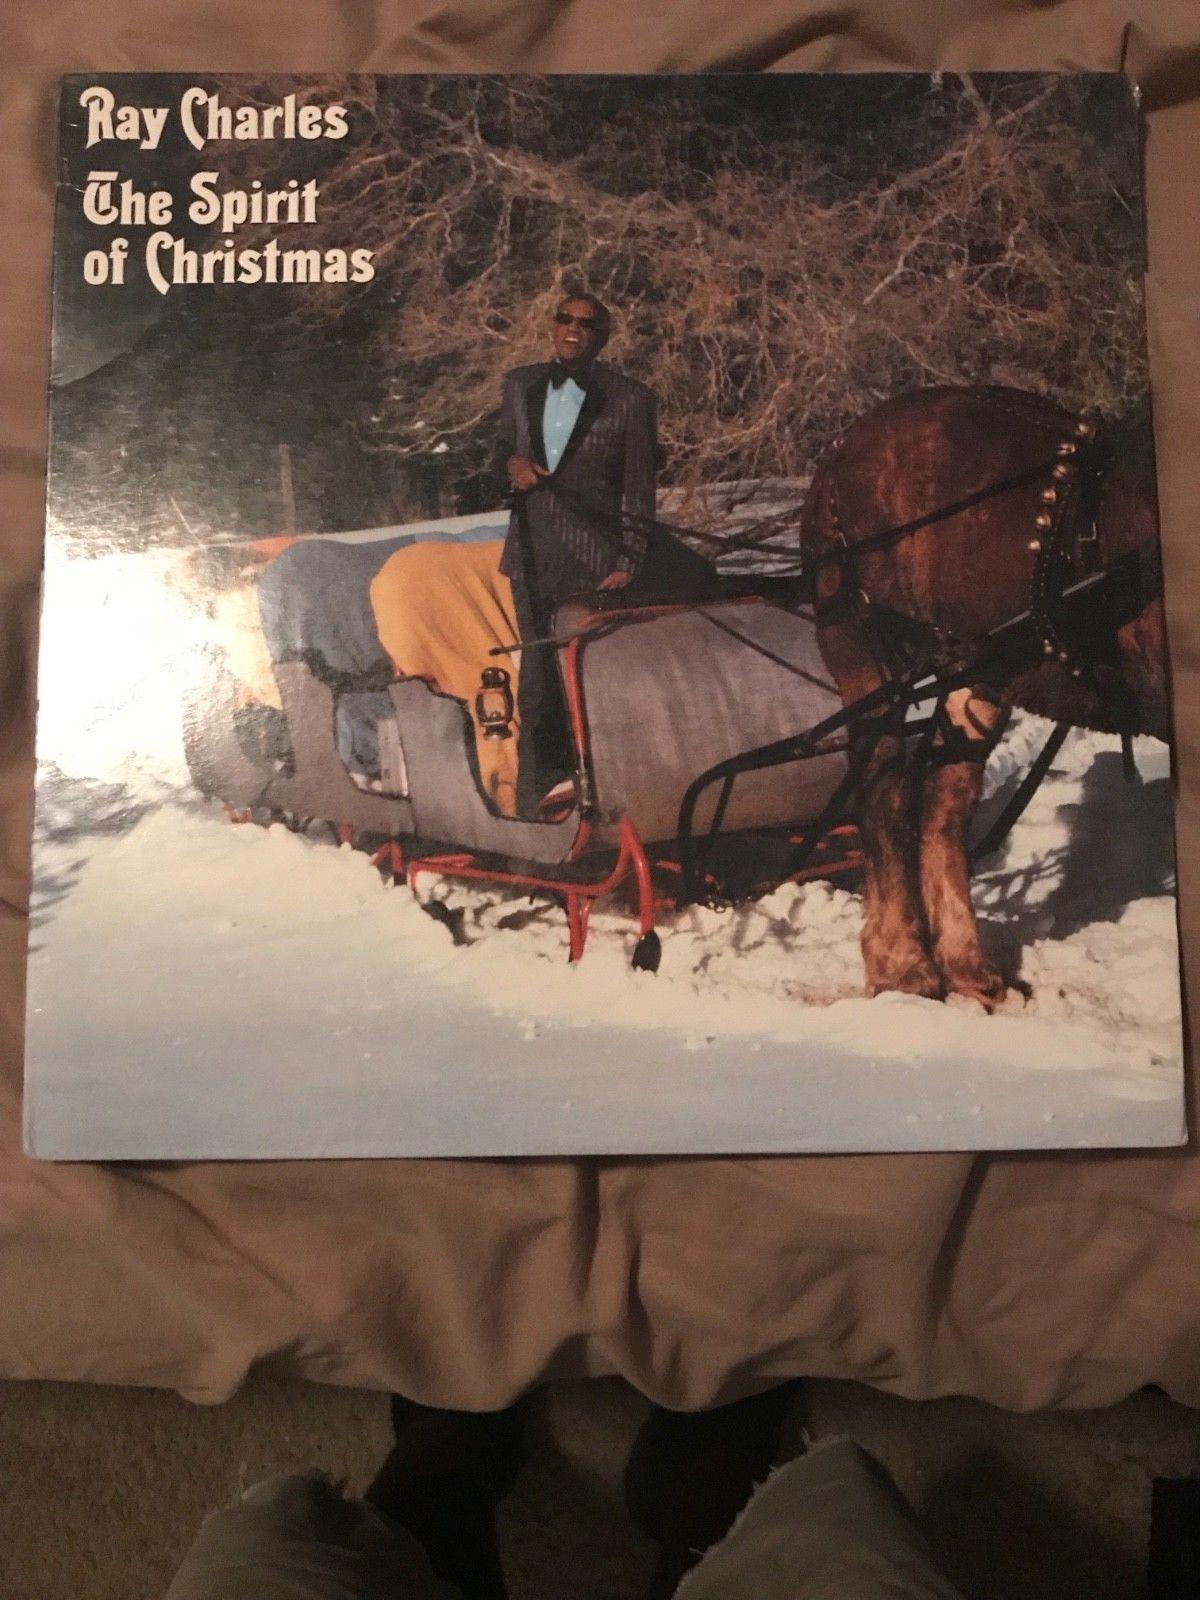 ray charles The spirit of christmas unopen vinyl